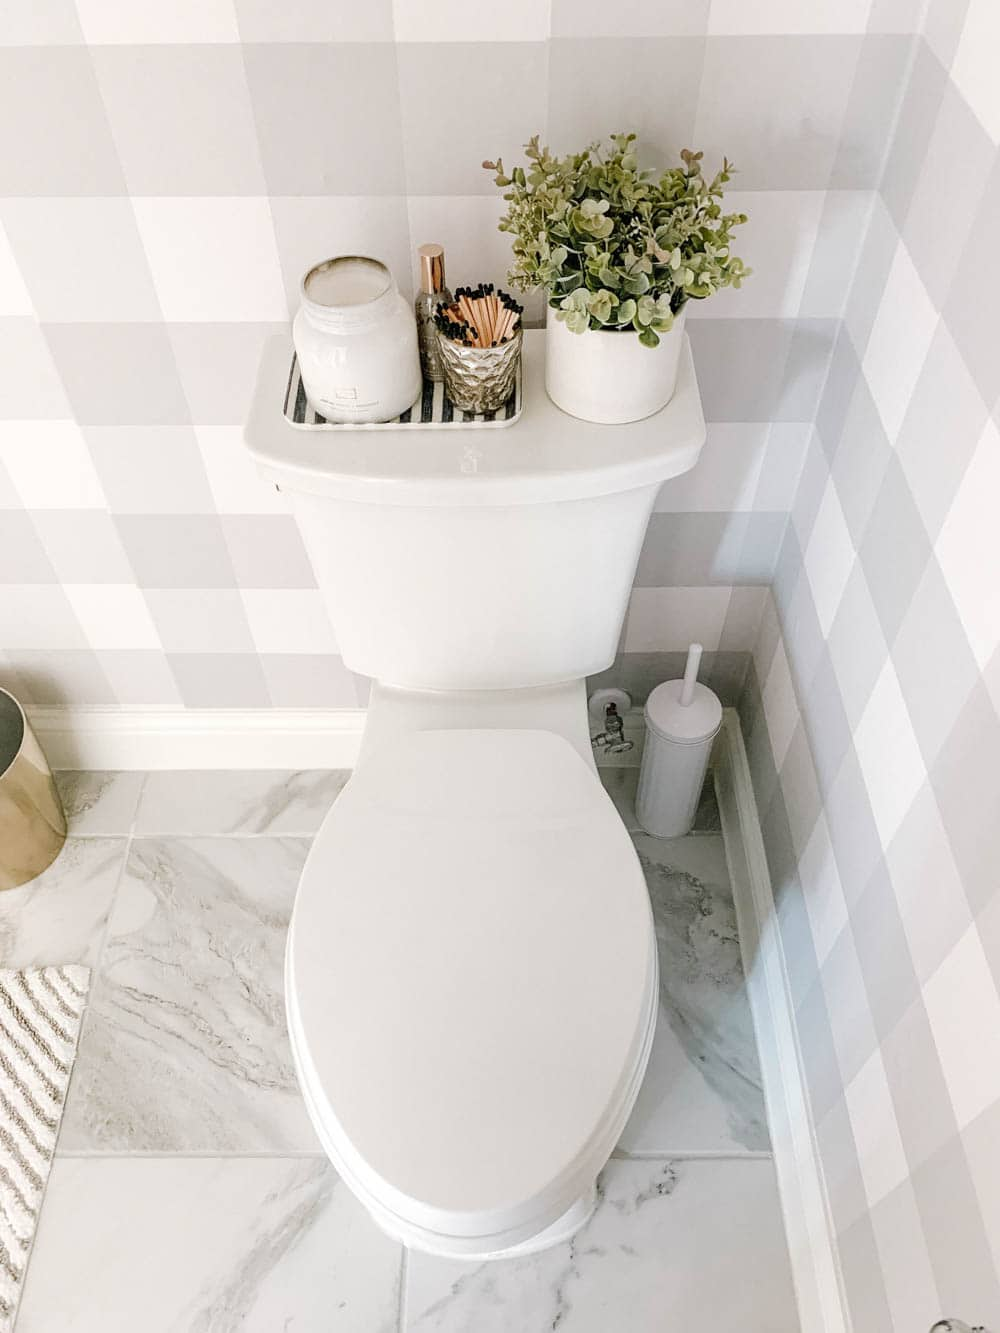 Pretty little details make a powder bathroom perfect for your guests. #ABlissfulNest #farmhousestyle #bathroom